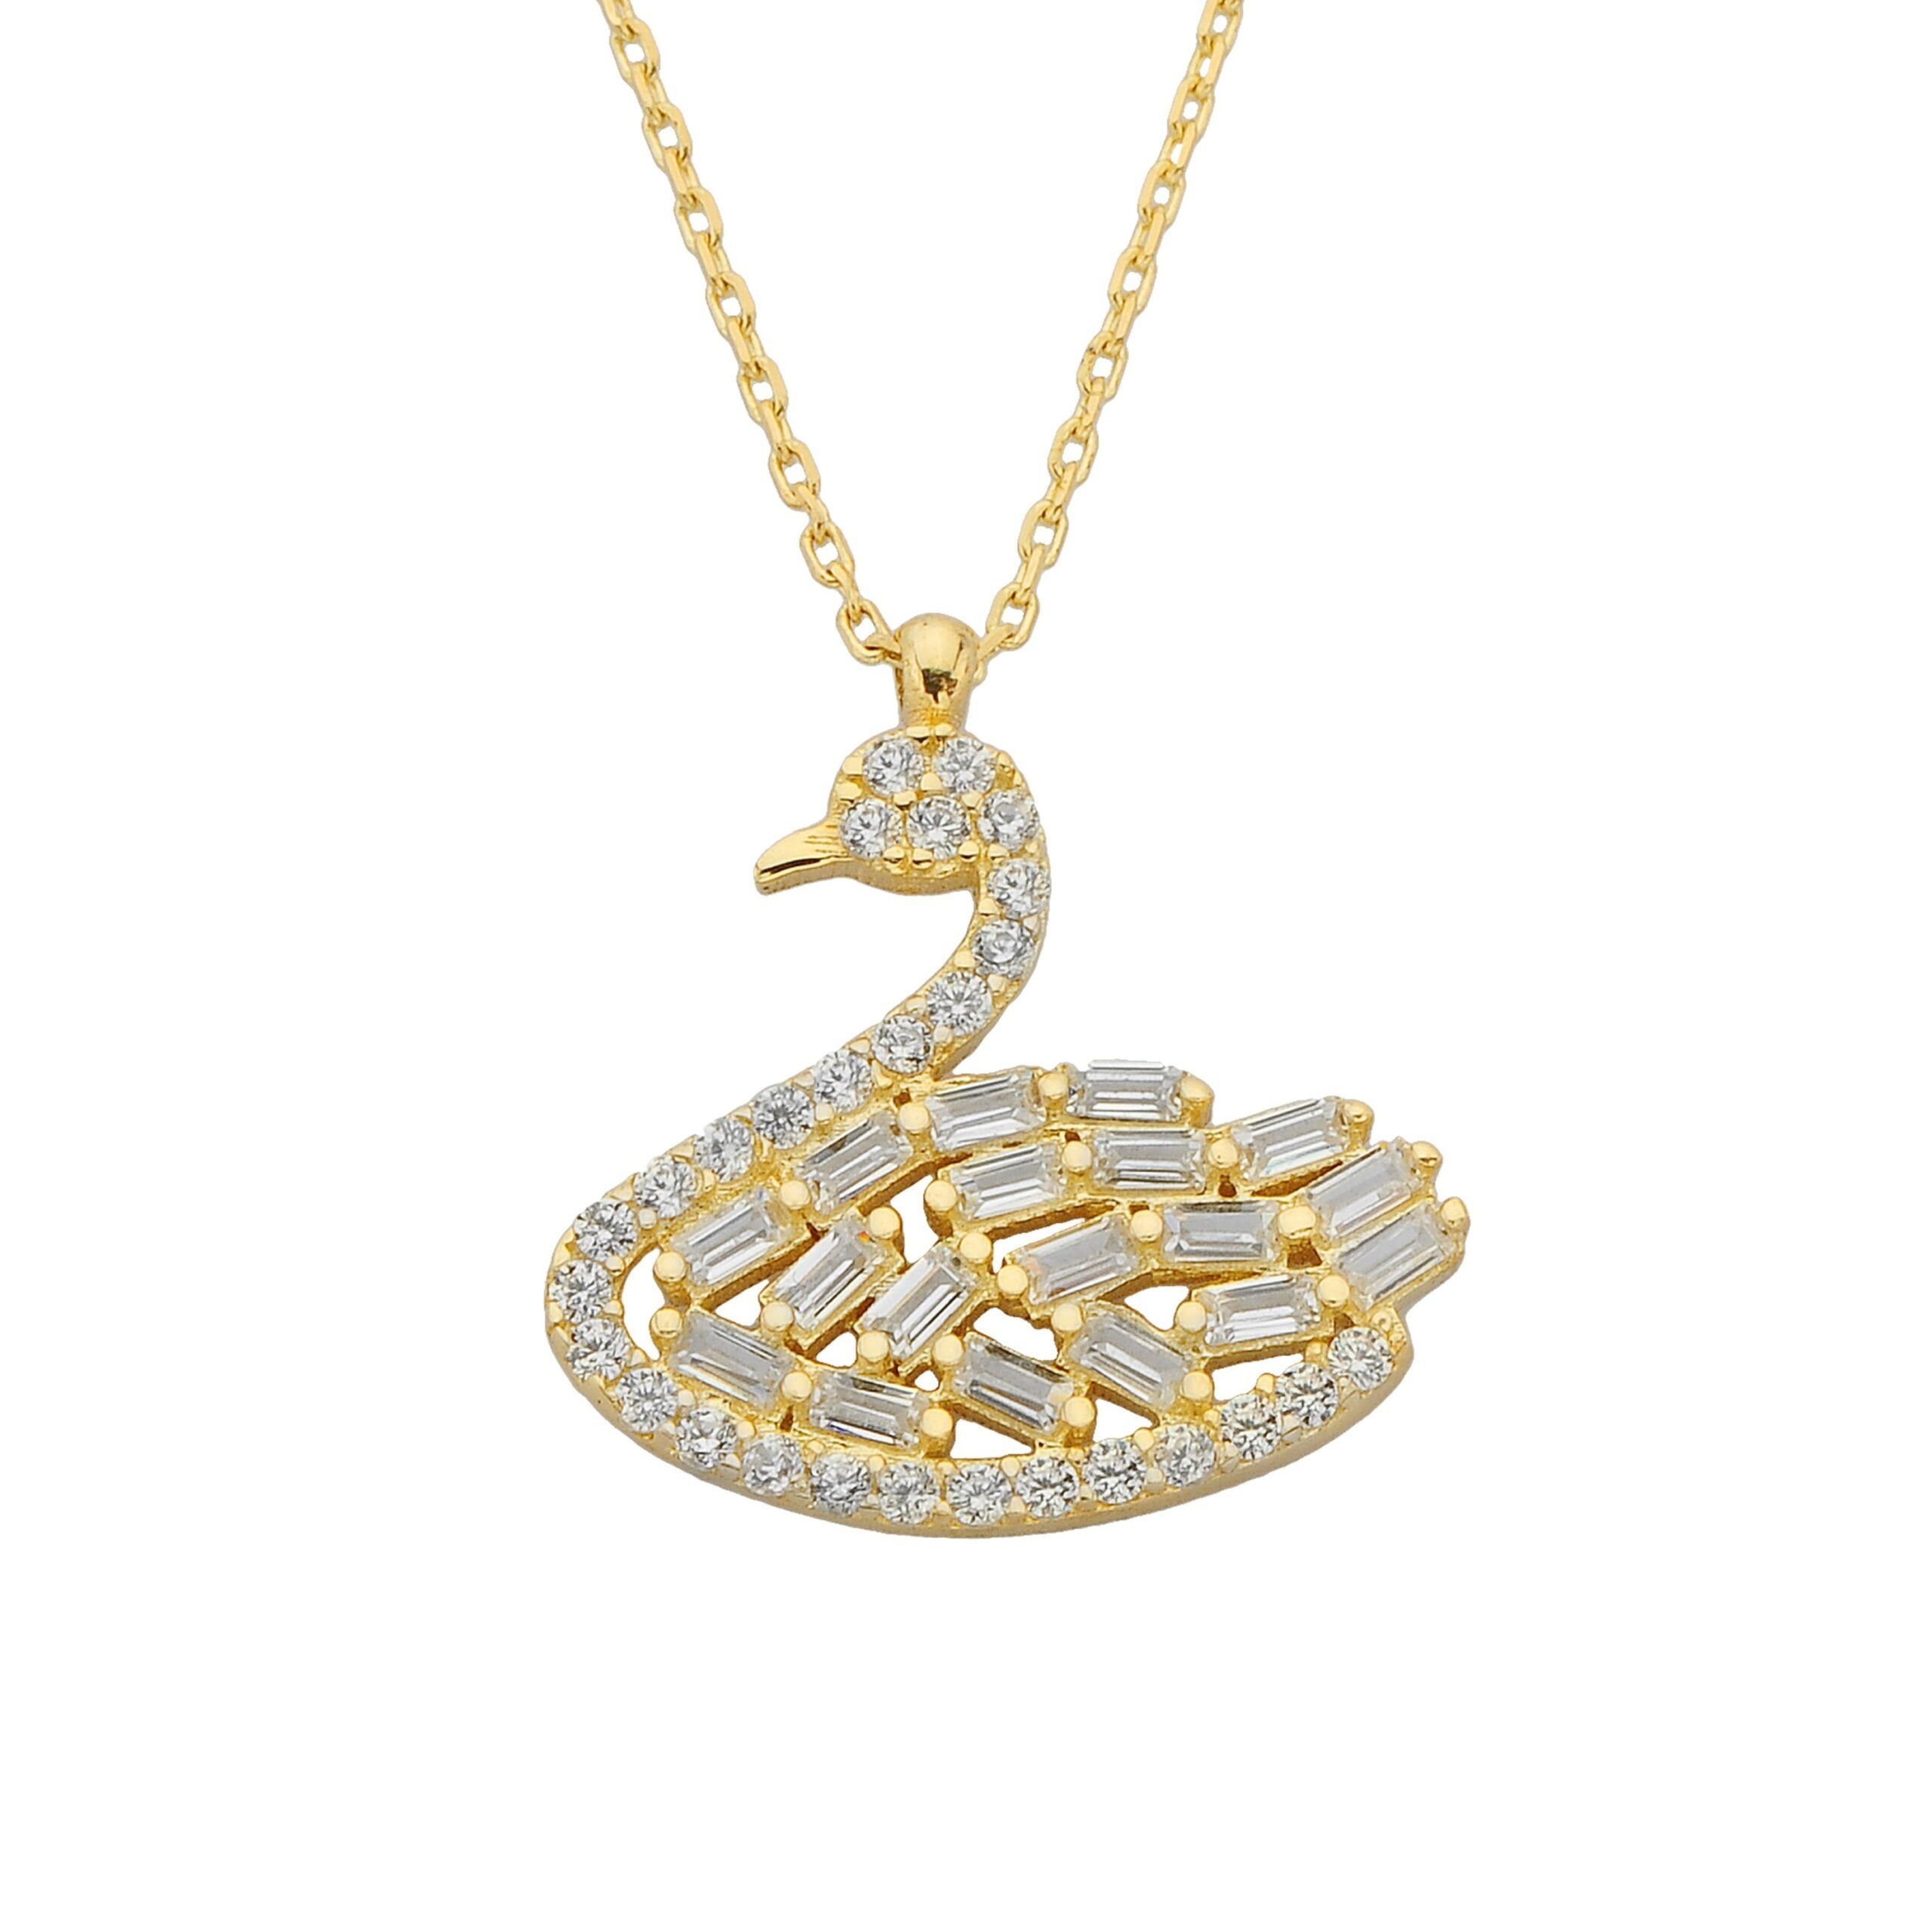 14K Real Solid Gold Swan Necklace Baguette and Cubic Zirconia Stones Dainty Charm Pendant for Women Birthday Mother's Day Christmas Gift Animal Jewelry